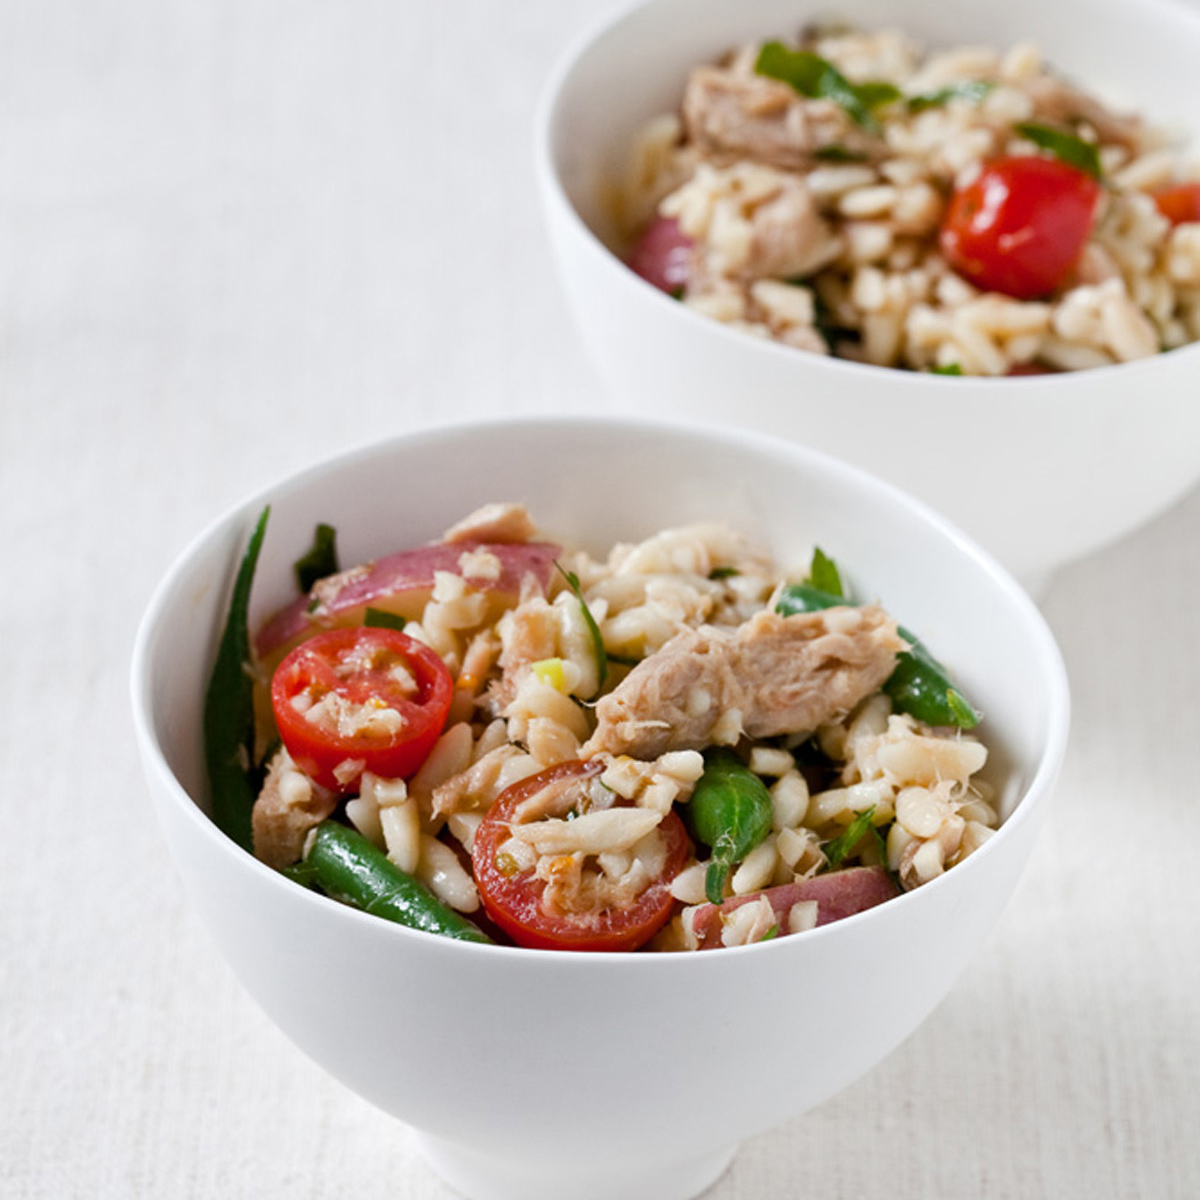 201003-r-tuna-potato-salad.jpg